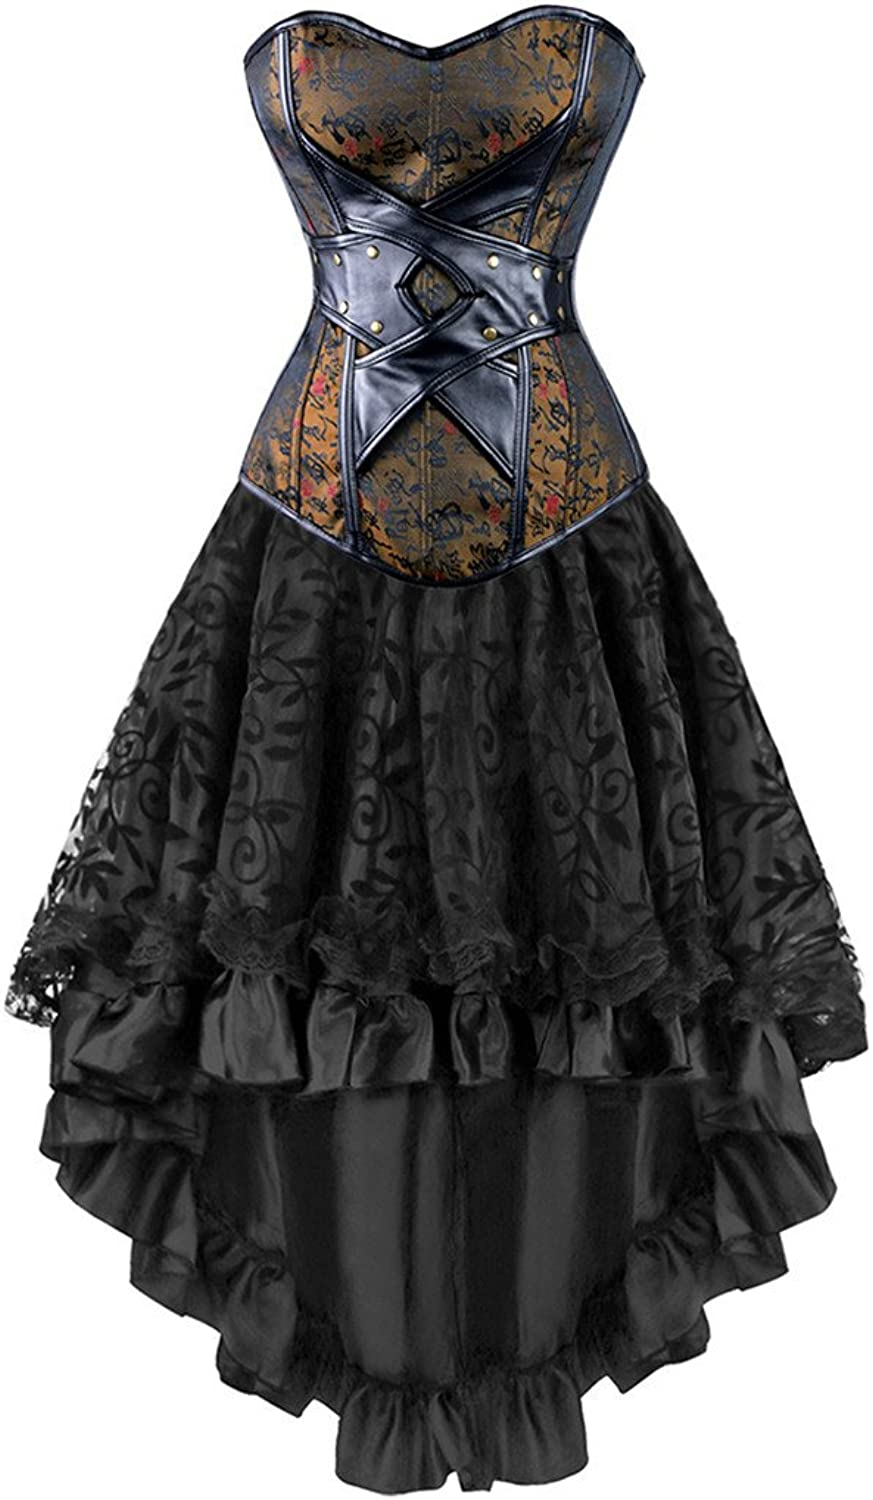 Seynnaod Gothic Victorian Steampunk Corset Dress Leather Corsets and Bustiers